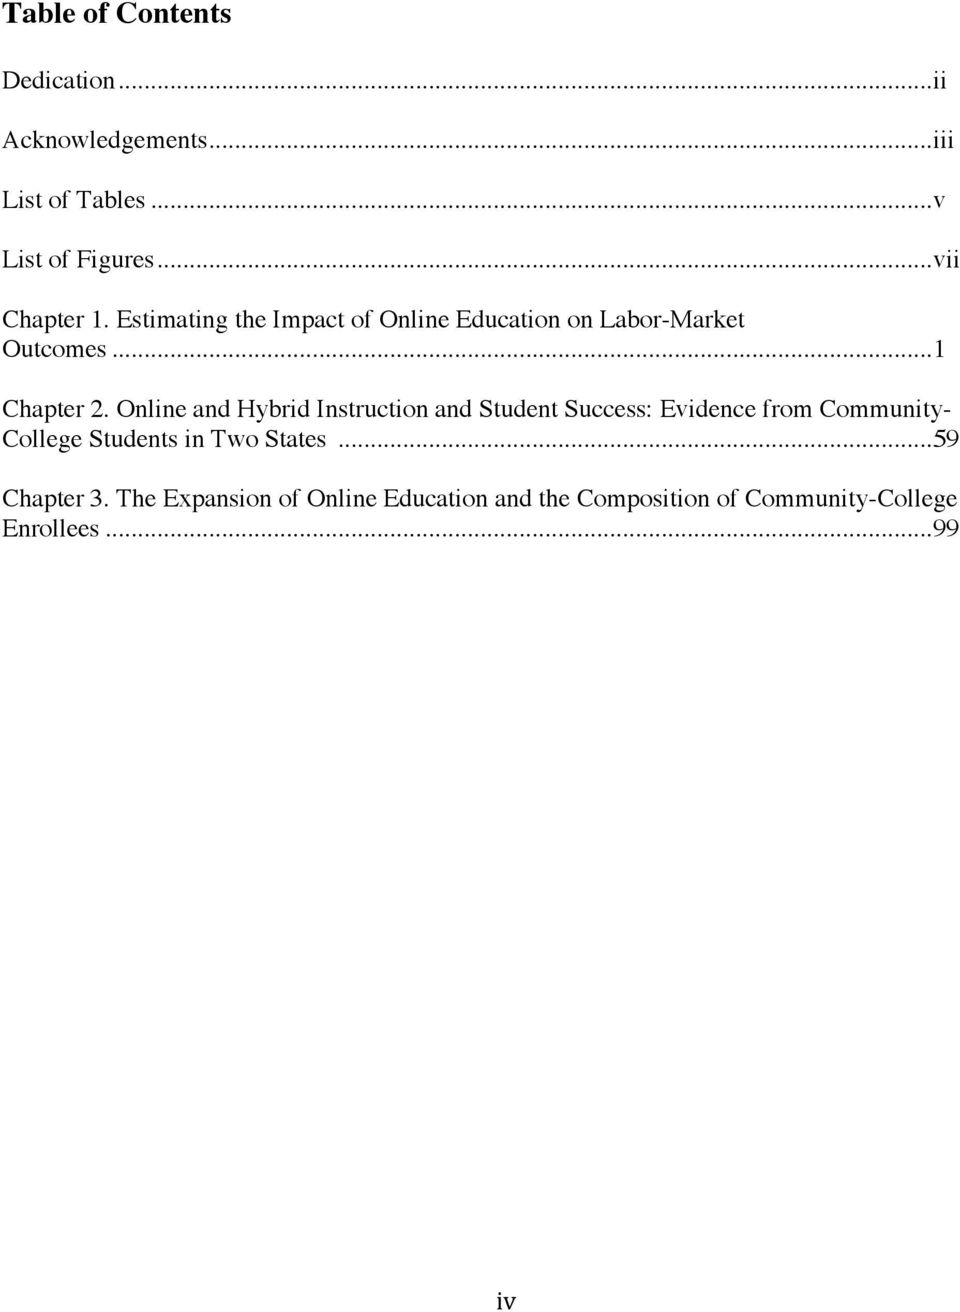 Online and Hybrid Instruction and Student Success: Evidence from Community- College Students in Two